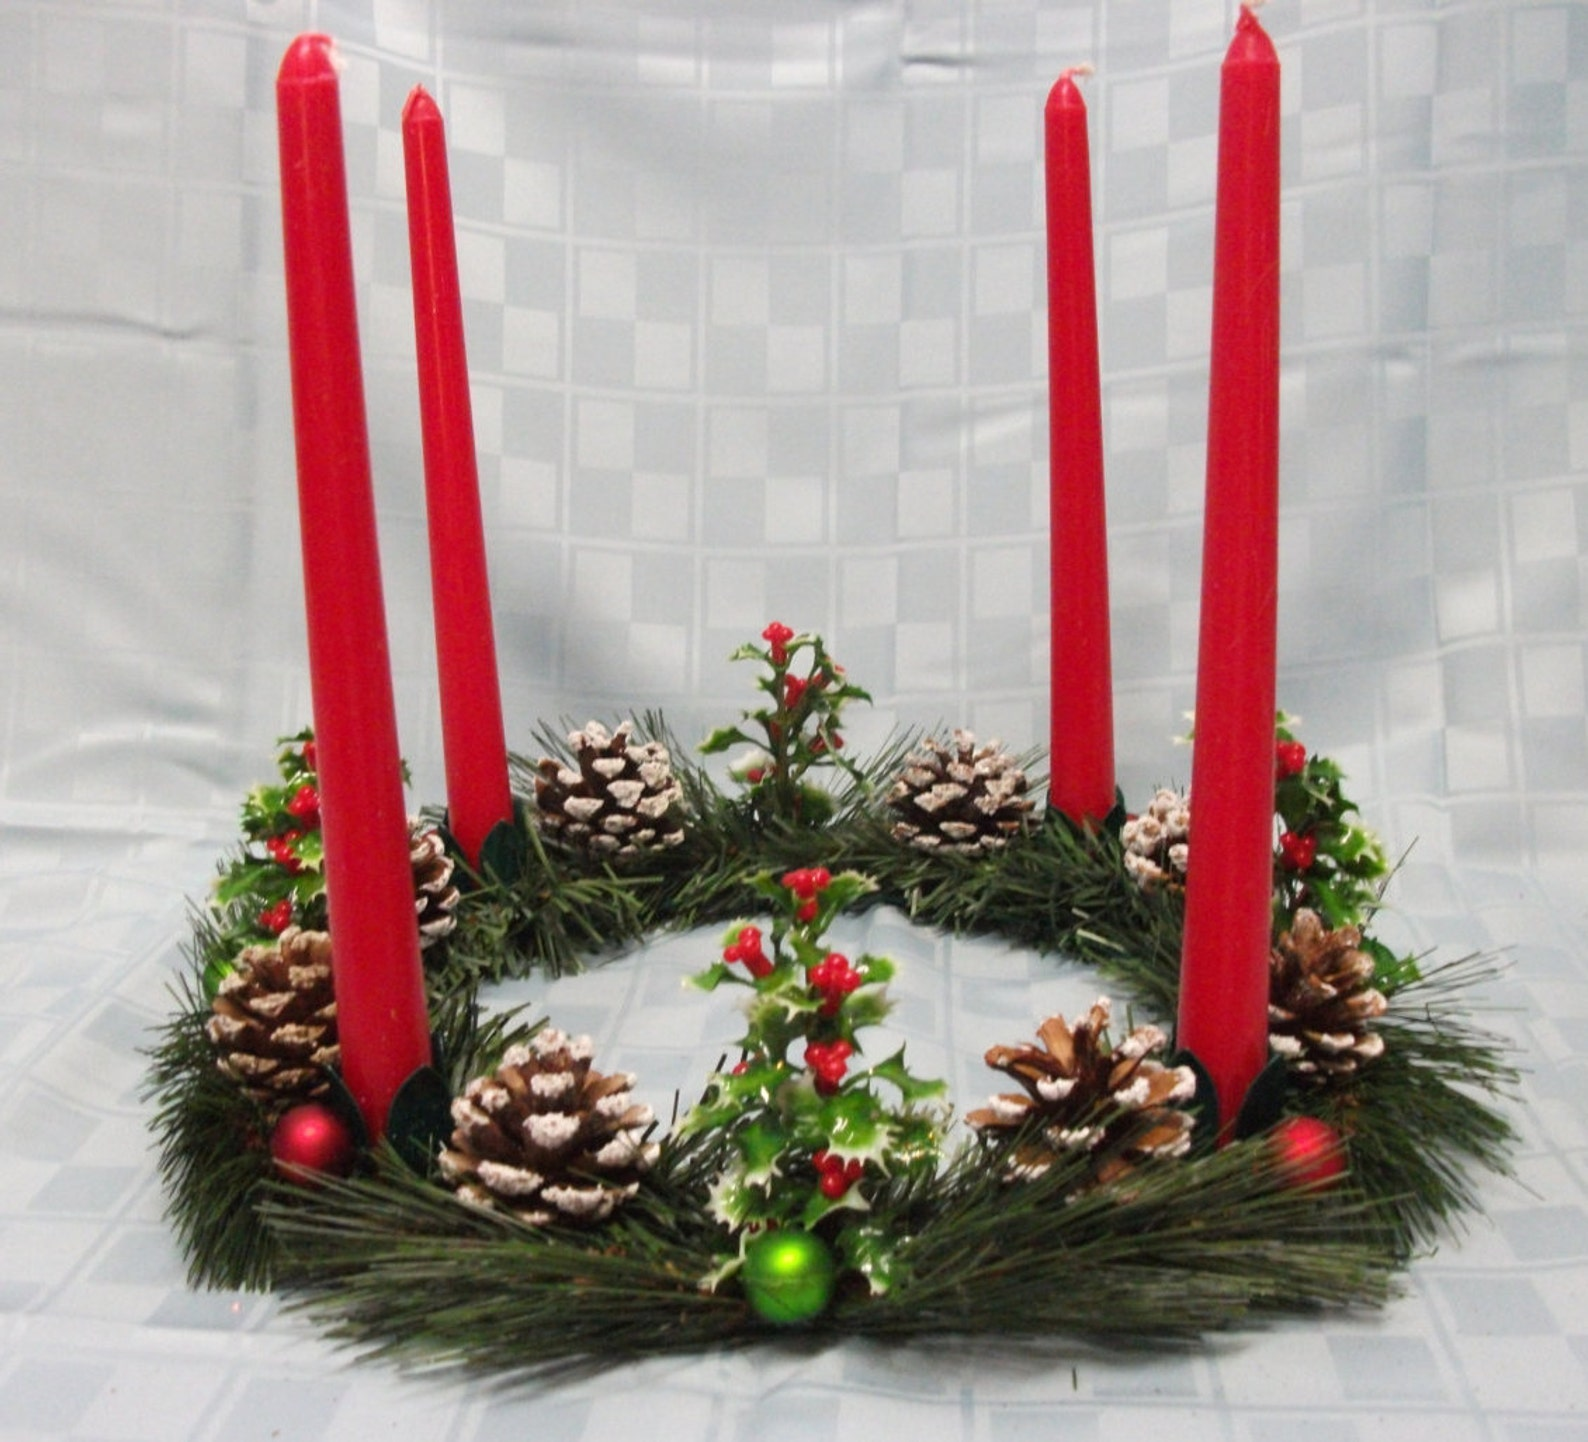 Advent Wreath, Decorated with Holly Branches, Frosted Pine Cones,